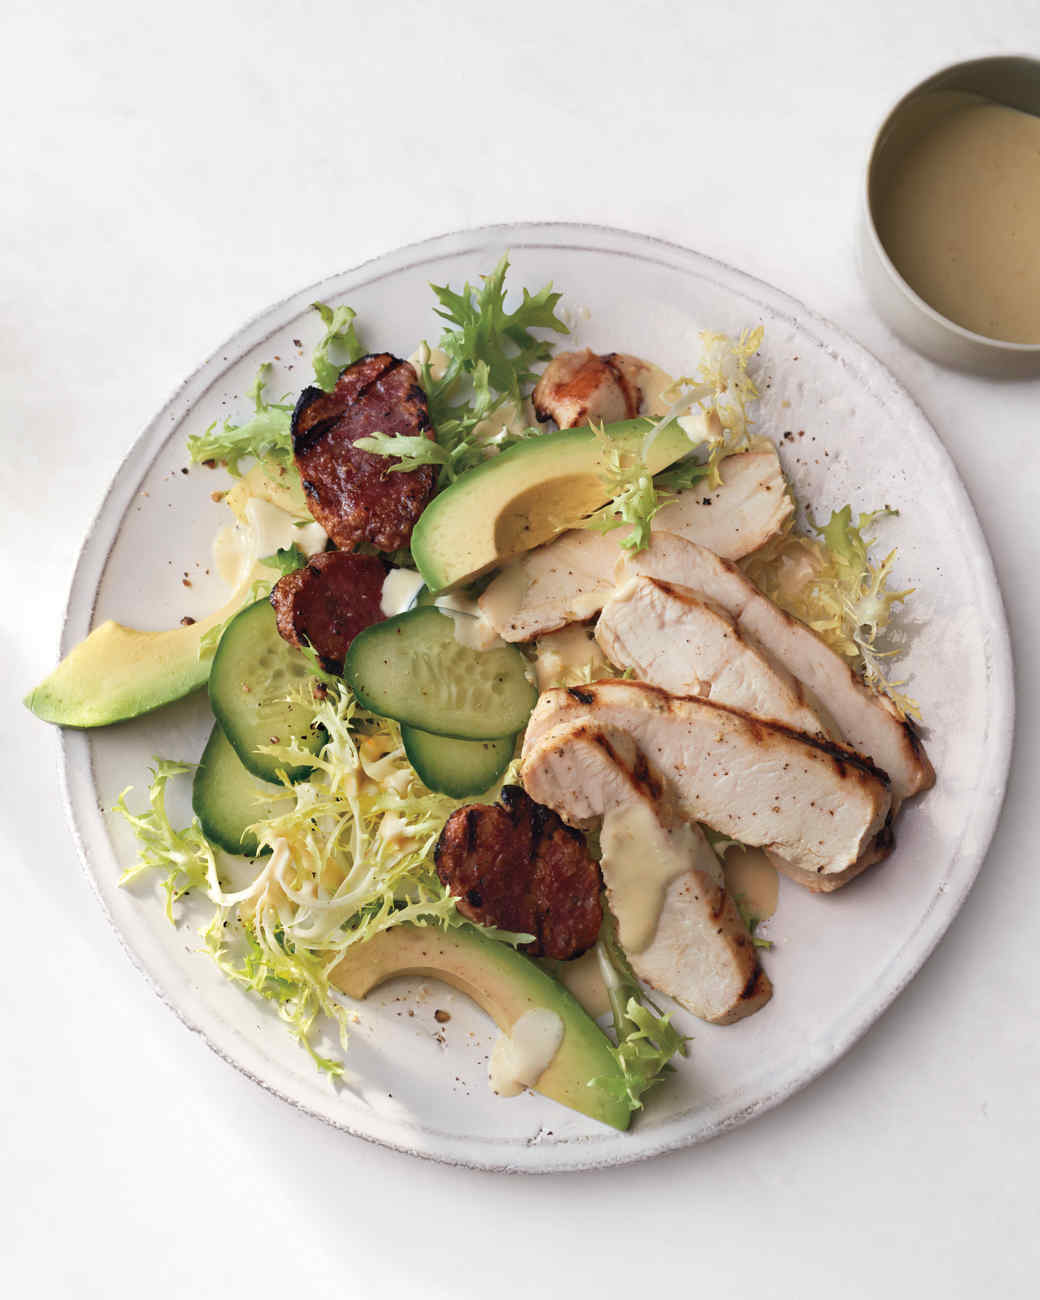 grilled-chicken-salad-354-d111129.jpg